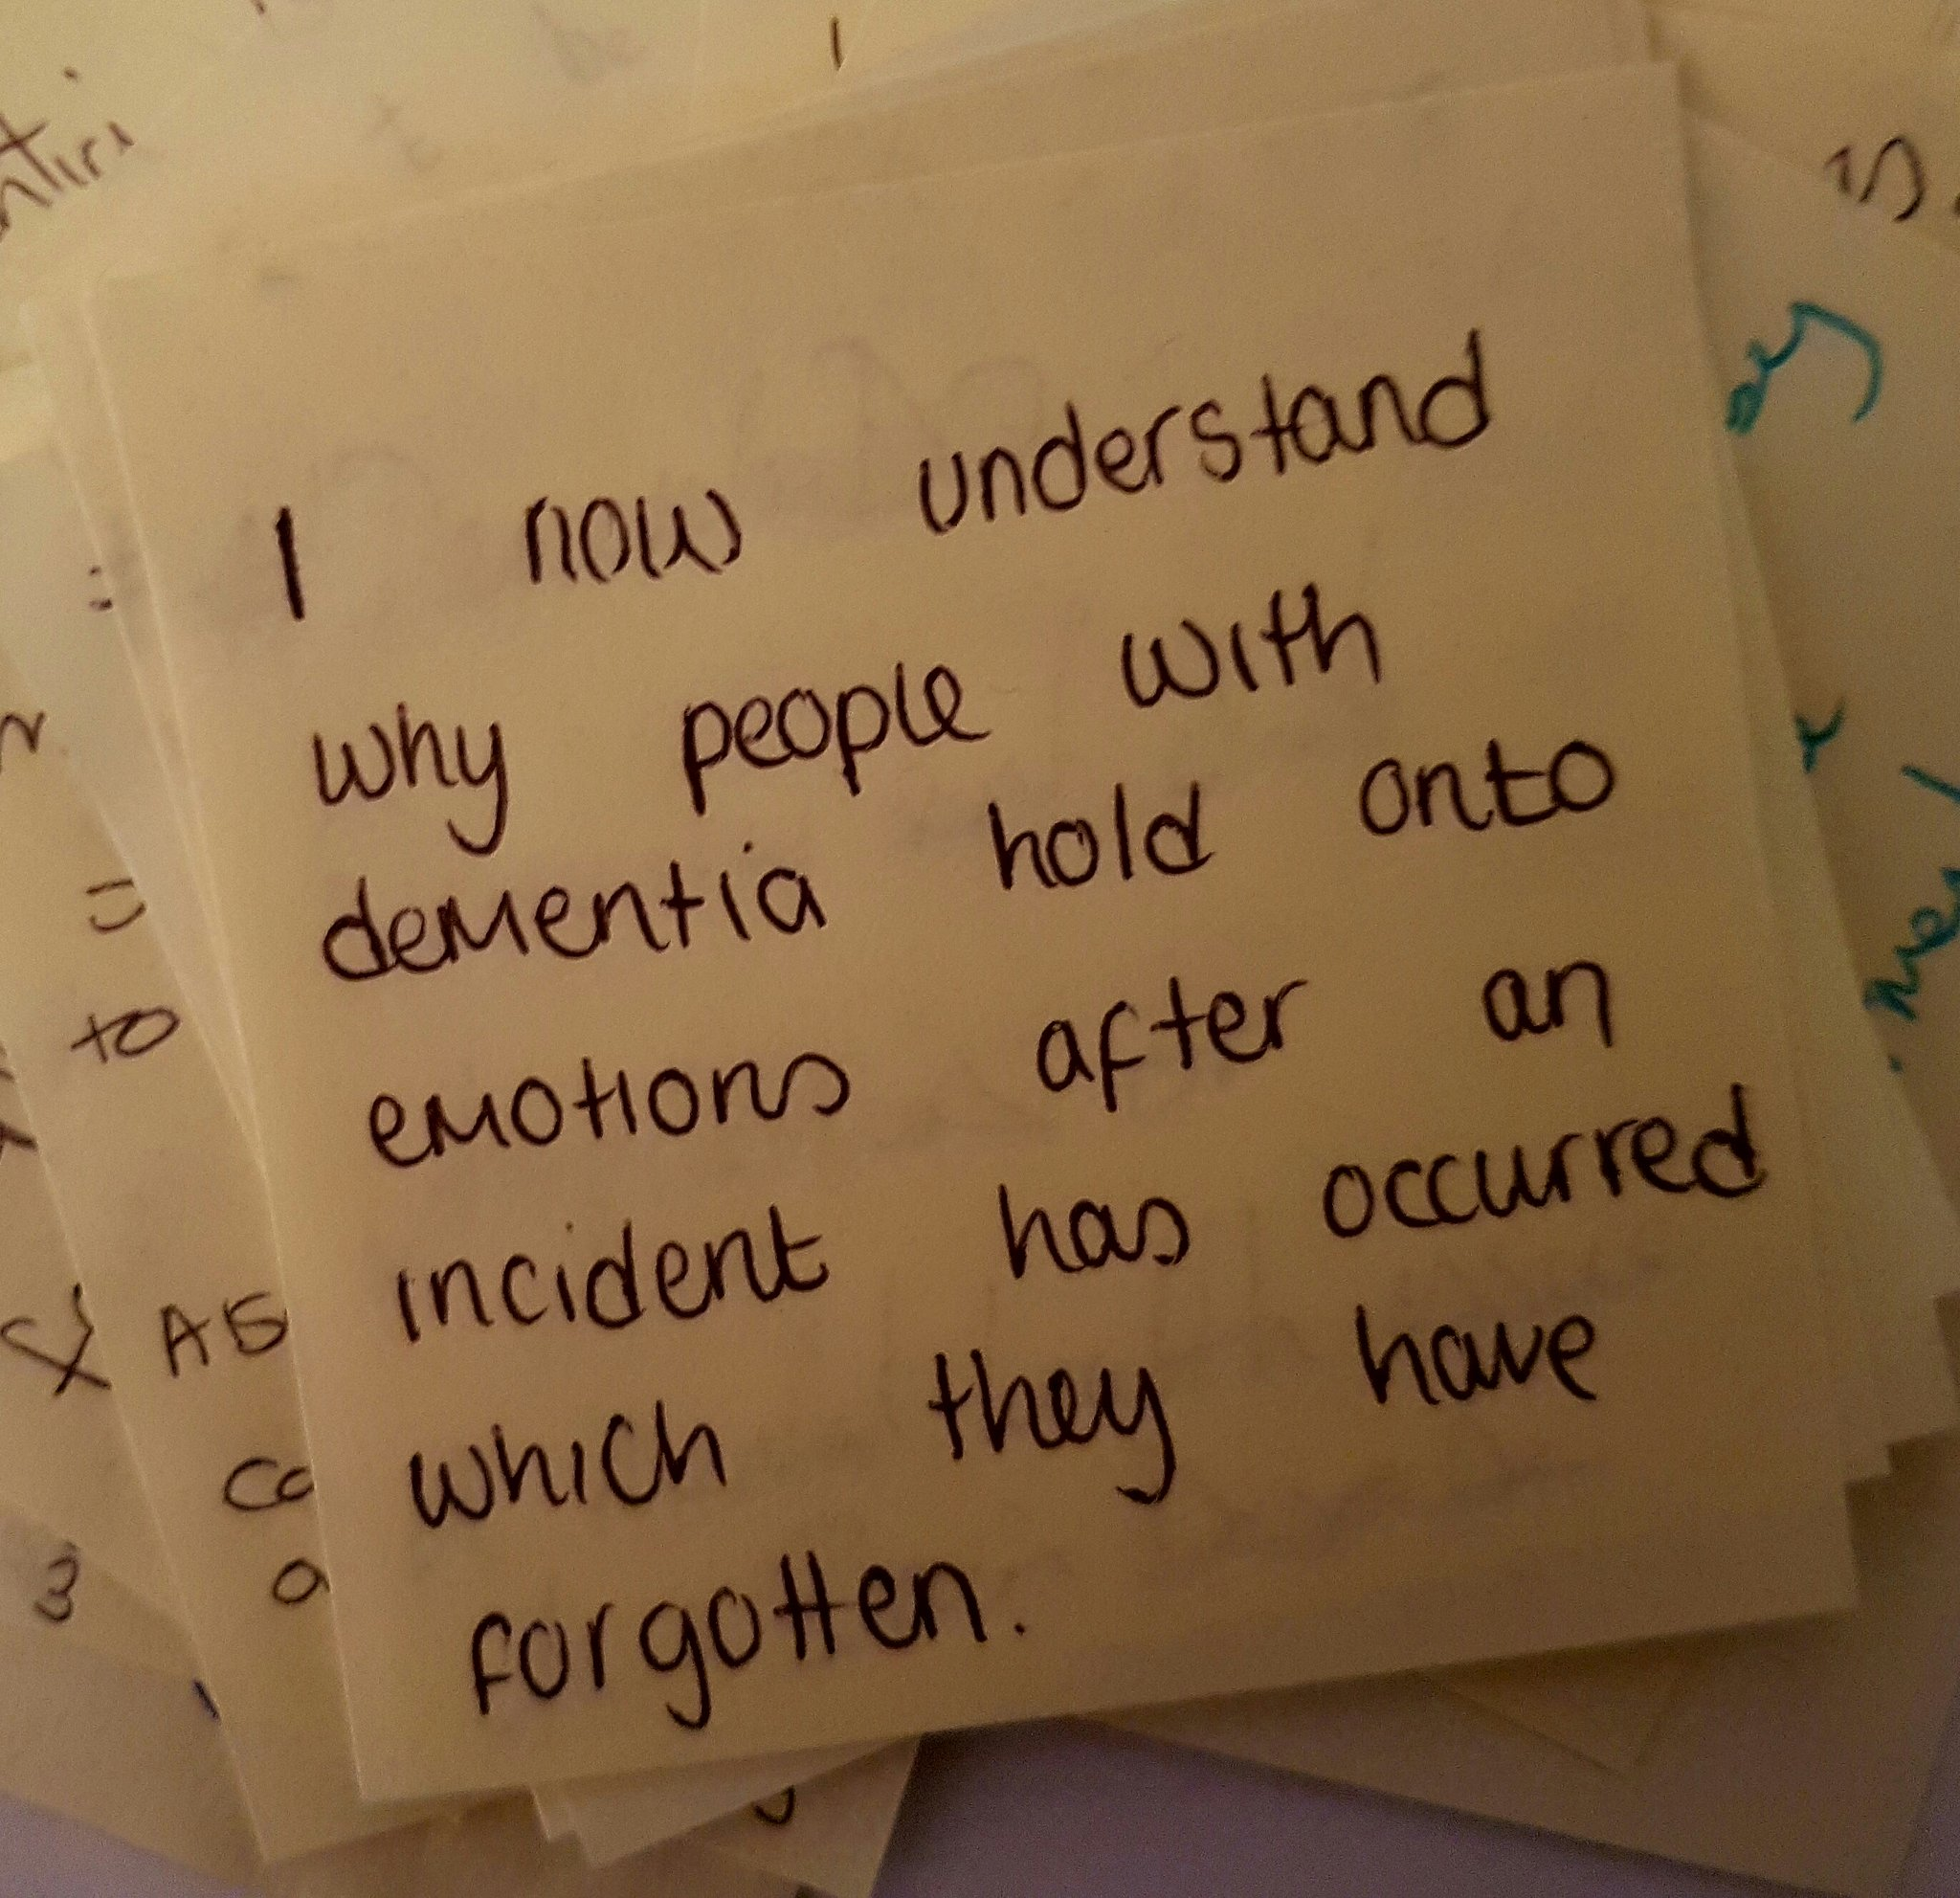 "Today's #dementiado post-it came from @cheshirepolice  ""I now understand why ppl with dementia hold on to emotions after an incident""  True. https://t.co/j3Sq0q1IL3"